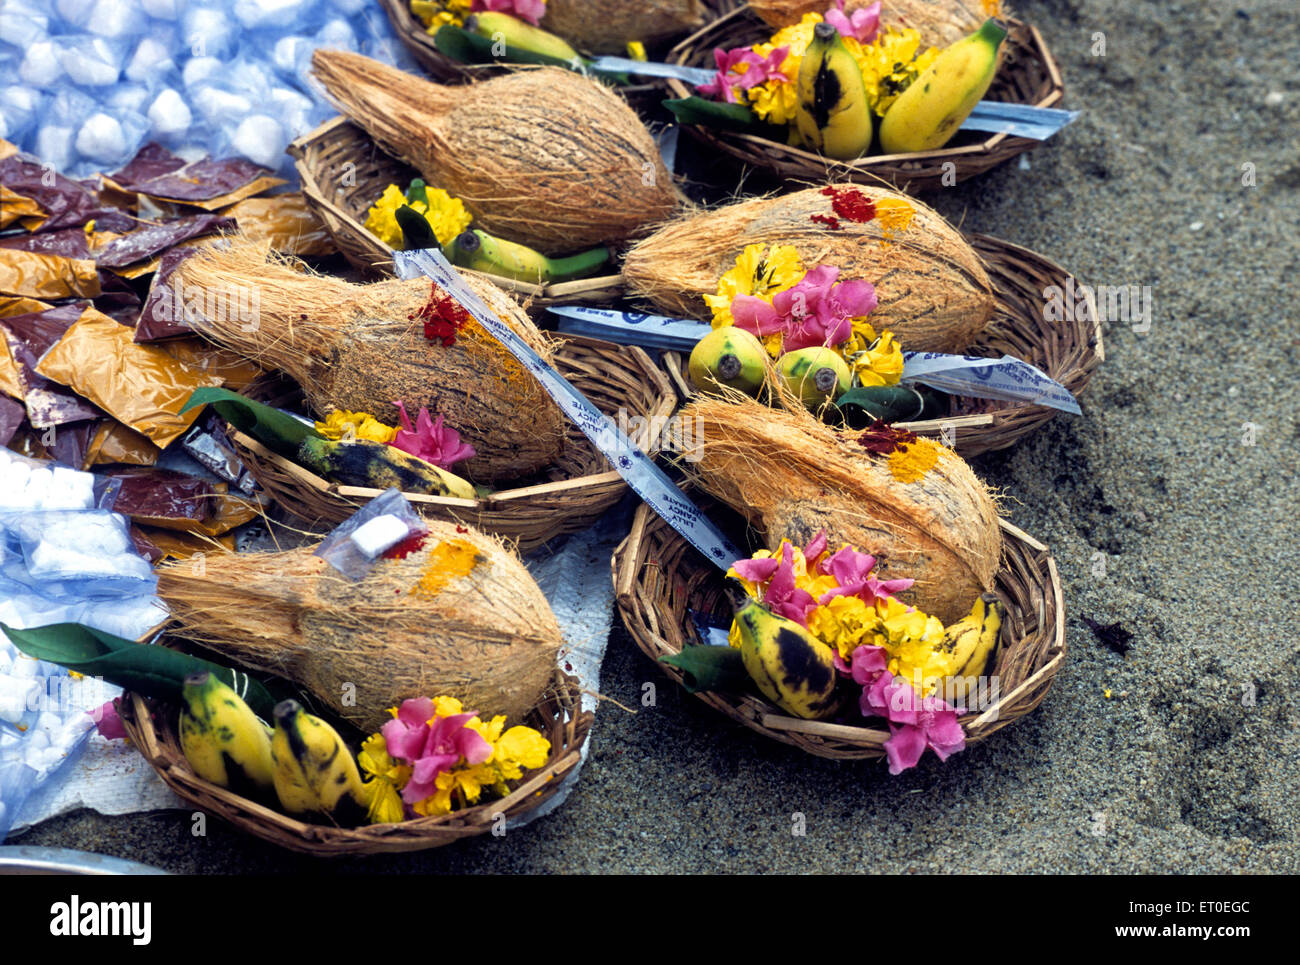 Pooja plates during masi magma festival in Pondicherry ; Tamil Nadu ; India - Stock Image